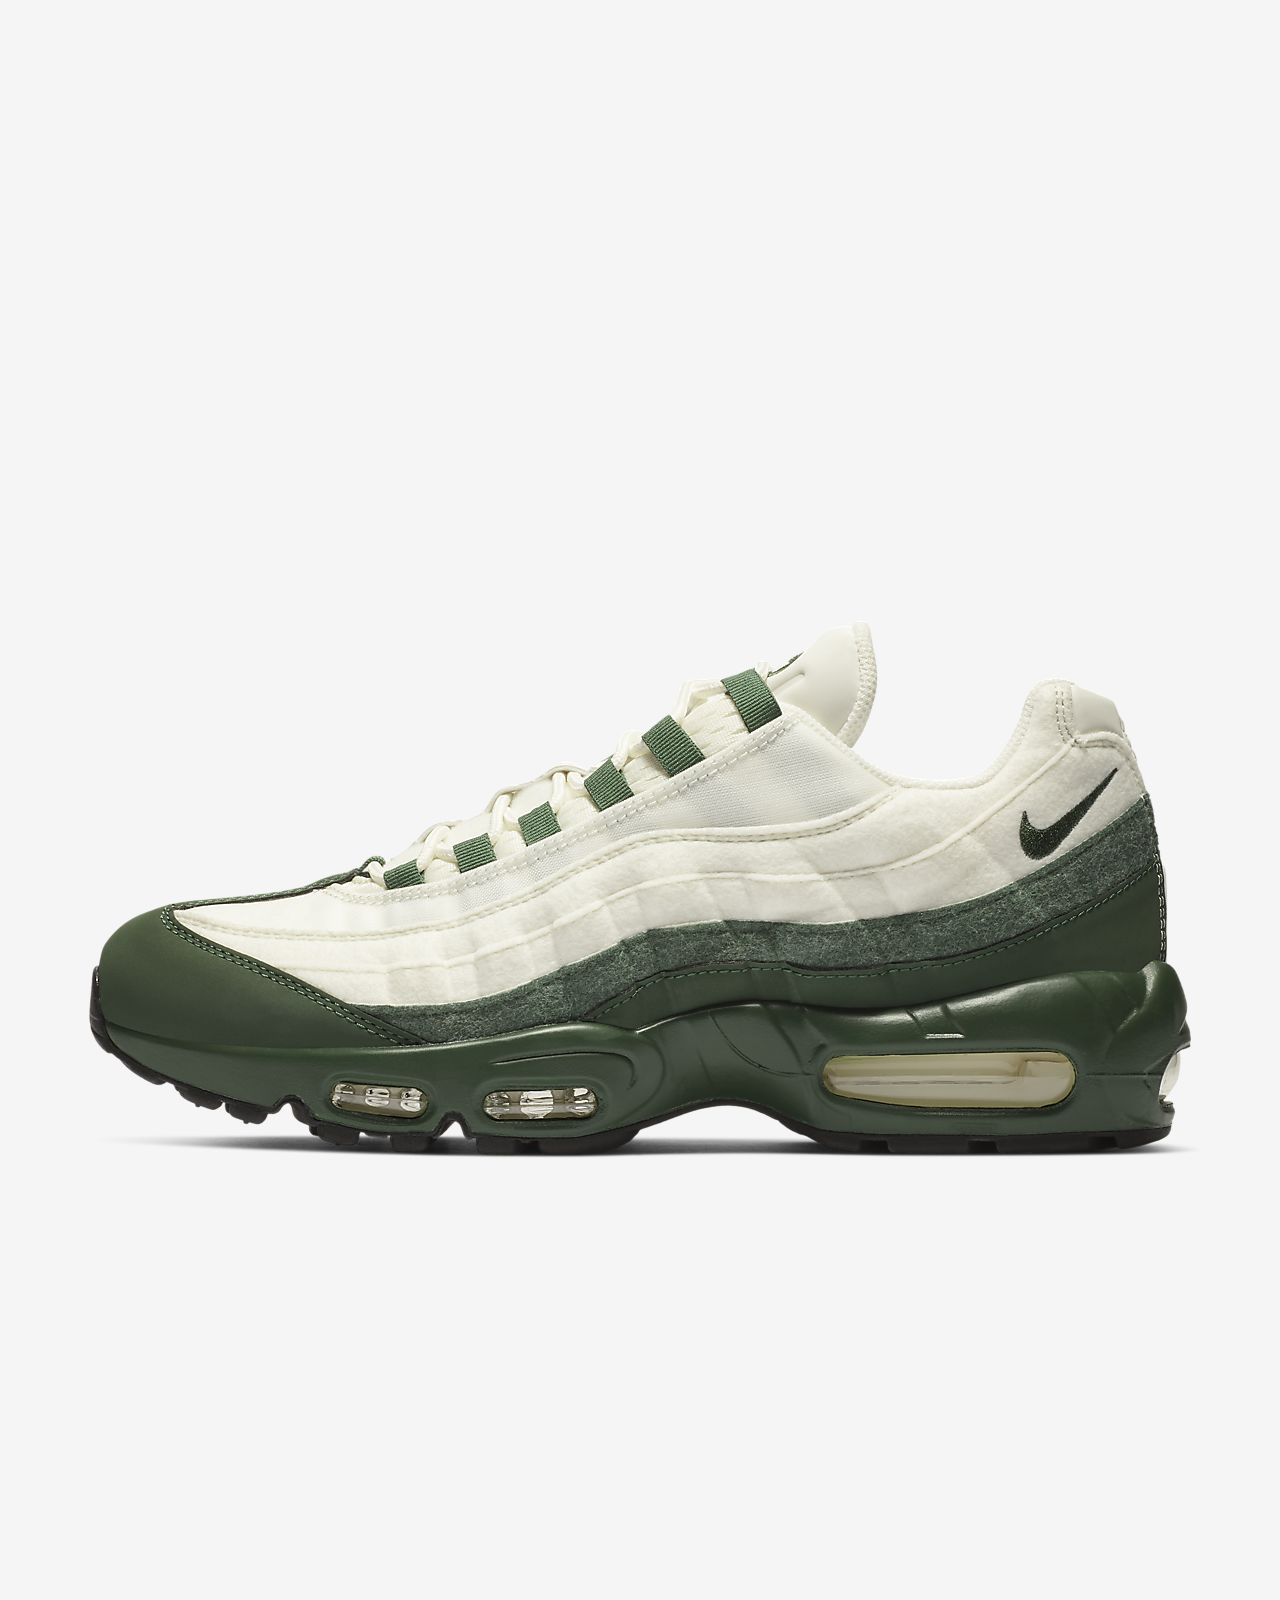 los angeles 08cba fcc28 ... Nike Air Max 95 Men s Shoe